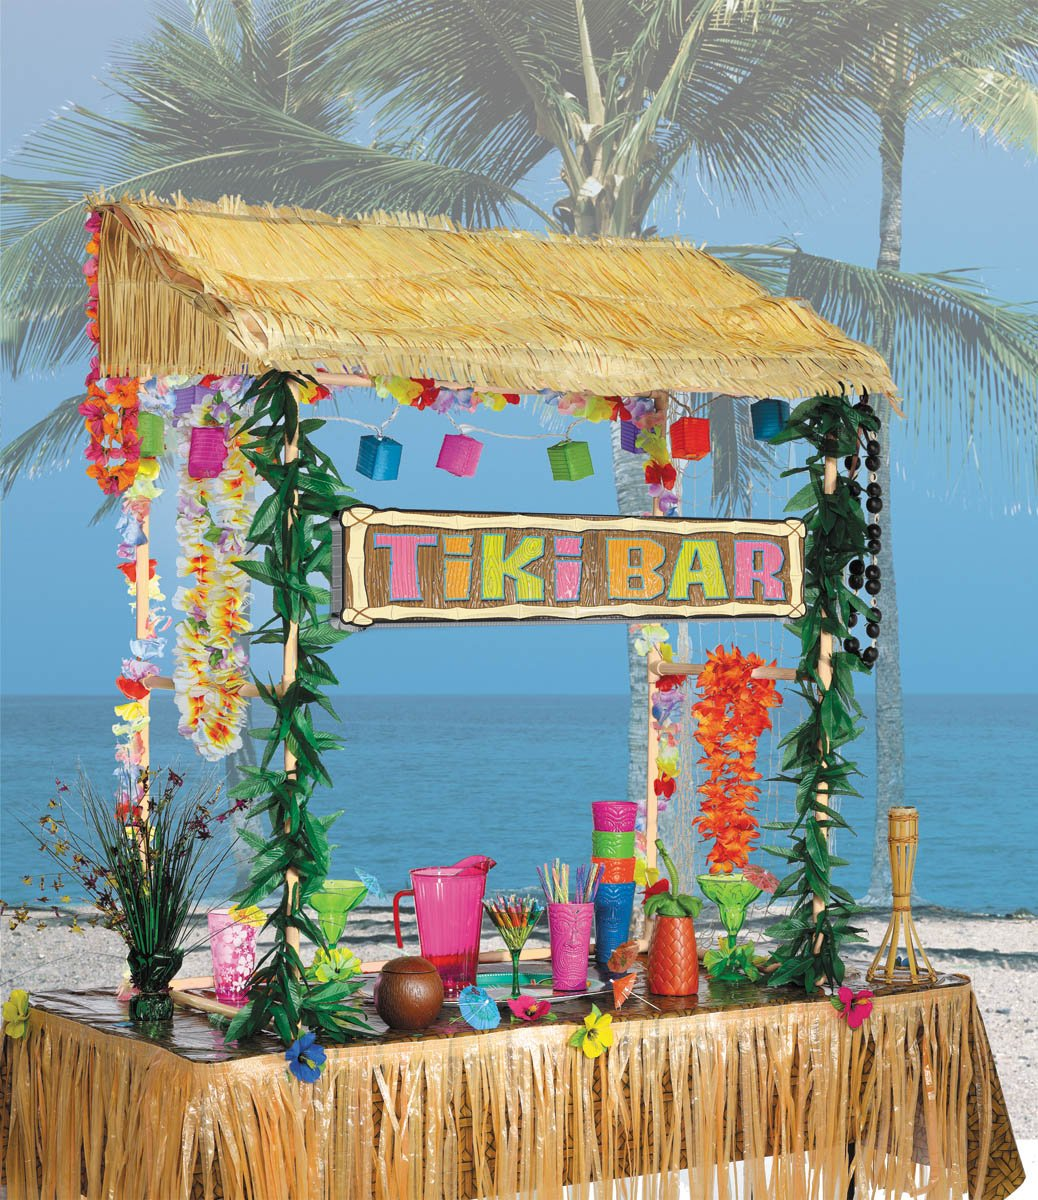 Amscan Table Top Tiki Bar Hut, 52 in High53 in wide23 in deep by Amscan (Image #1)